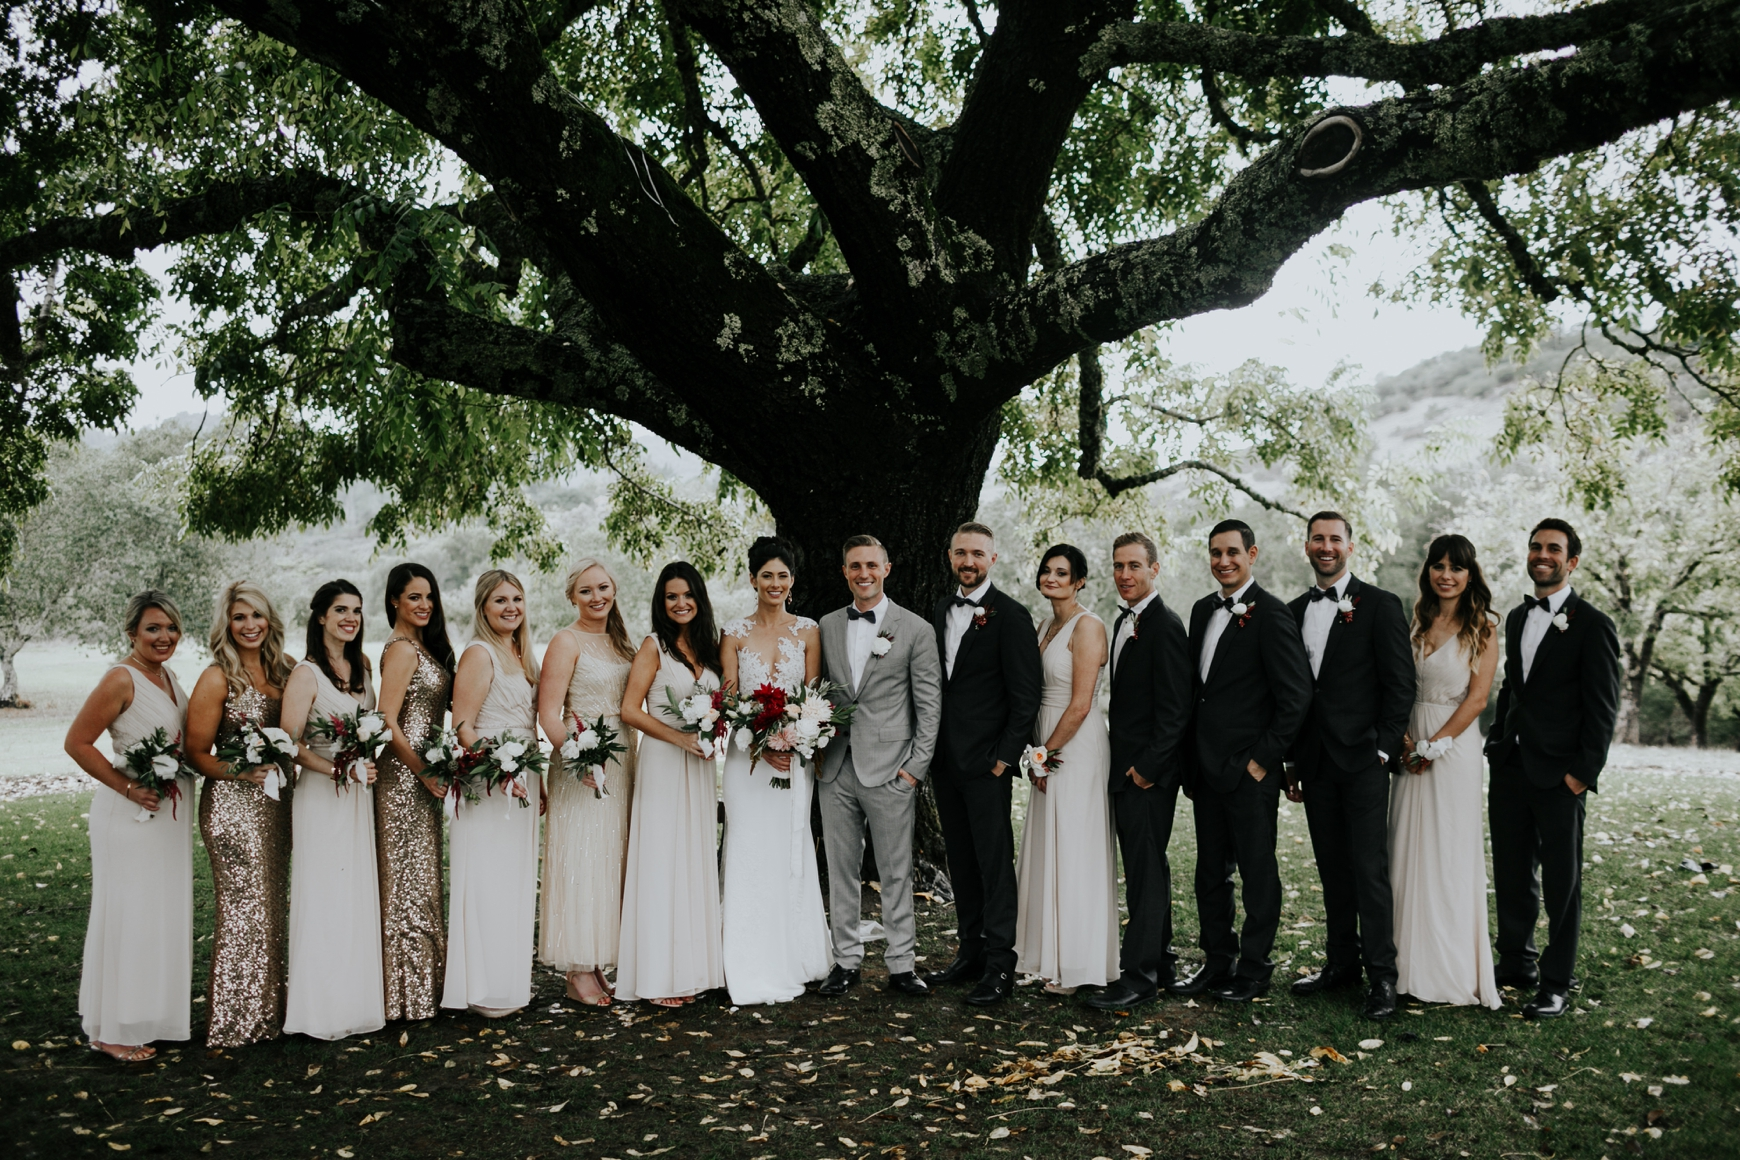 SSS Ranch Wedding Chiara & Jacques Emily Magers Photography-771.jpg